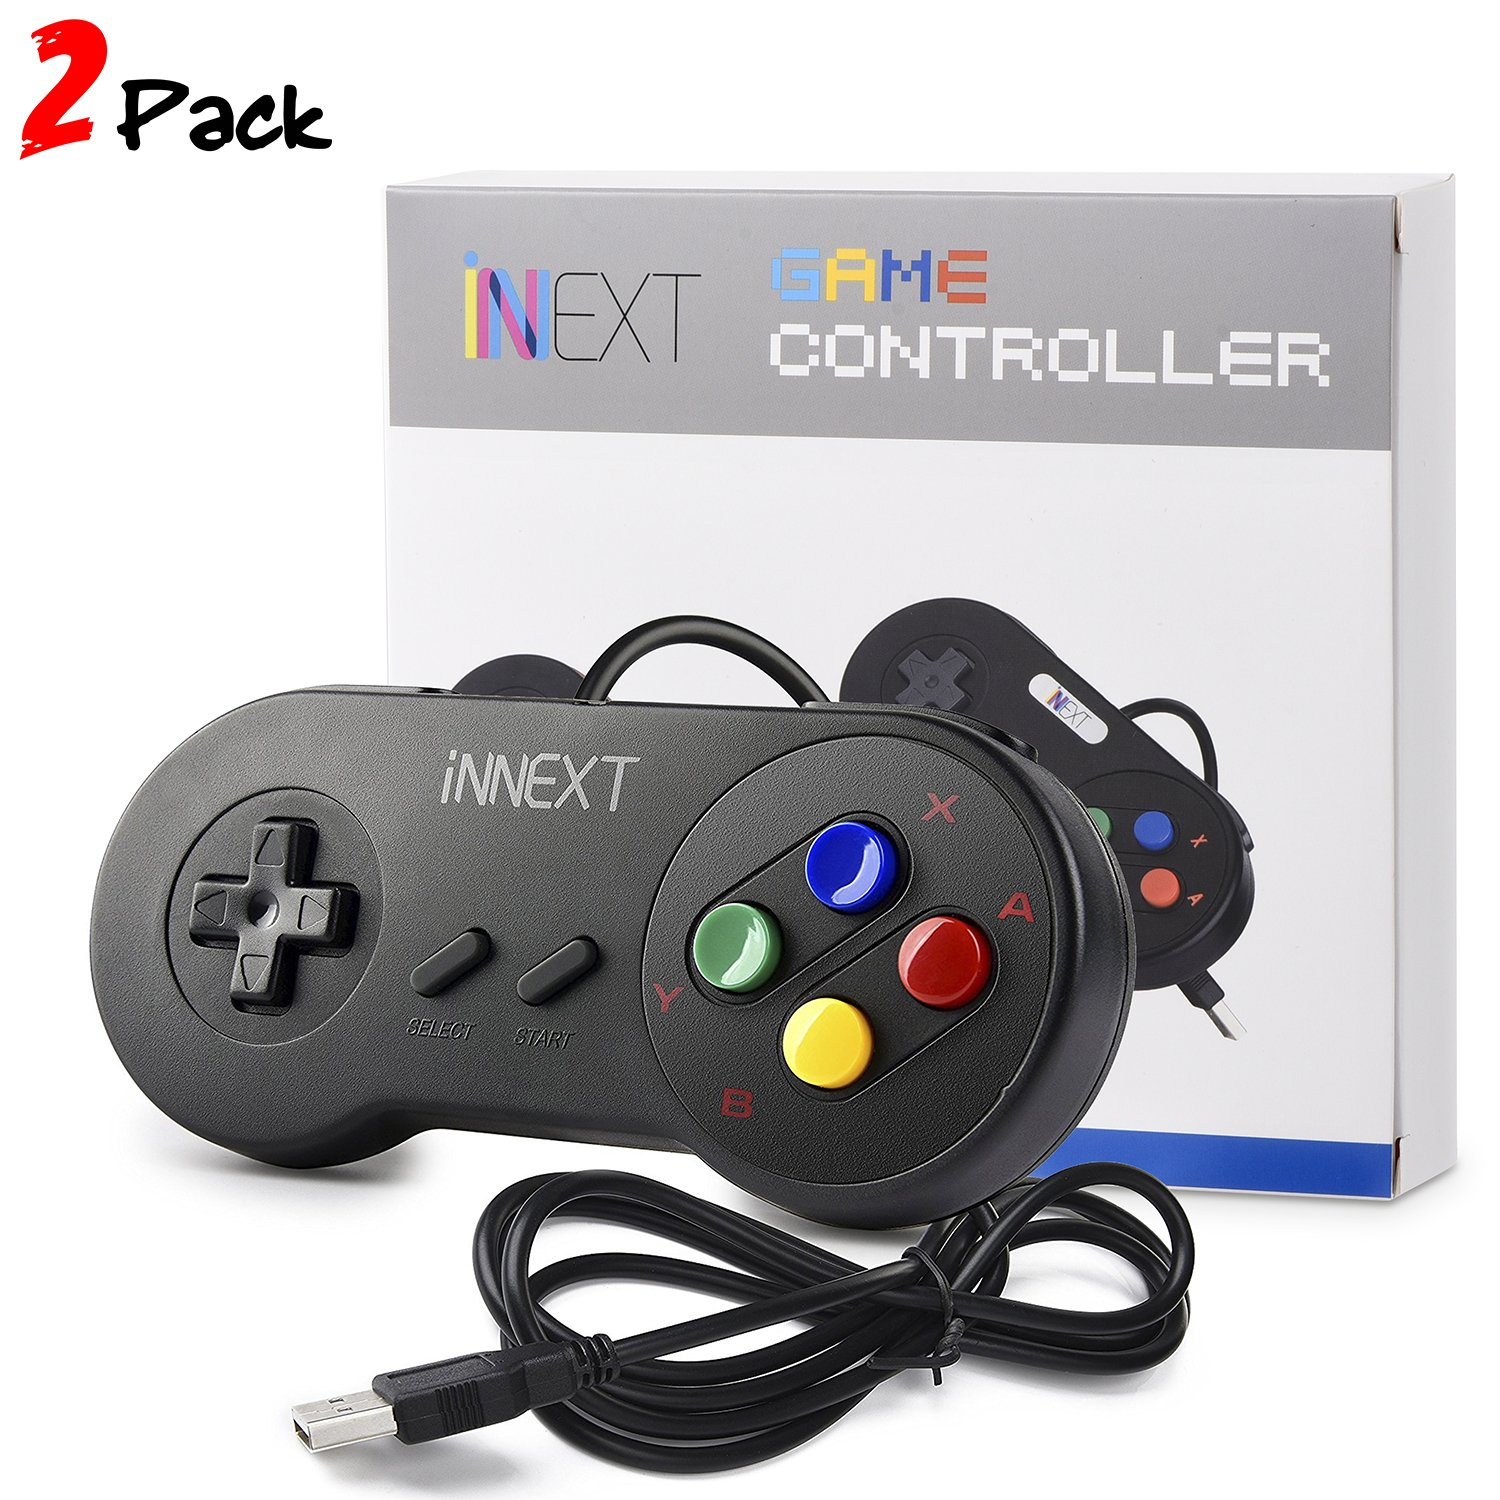 iNNEXT 2 x SNES USB-Controller PC Gamepad Joypad SNES Controller Gamepad fü r Windows PC Mac Y-D002